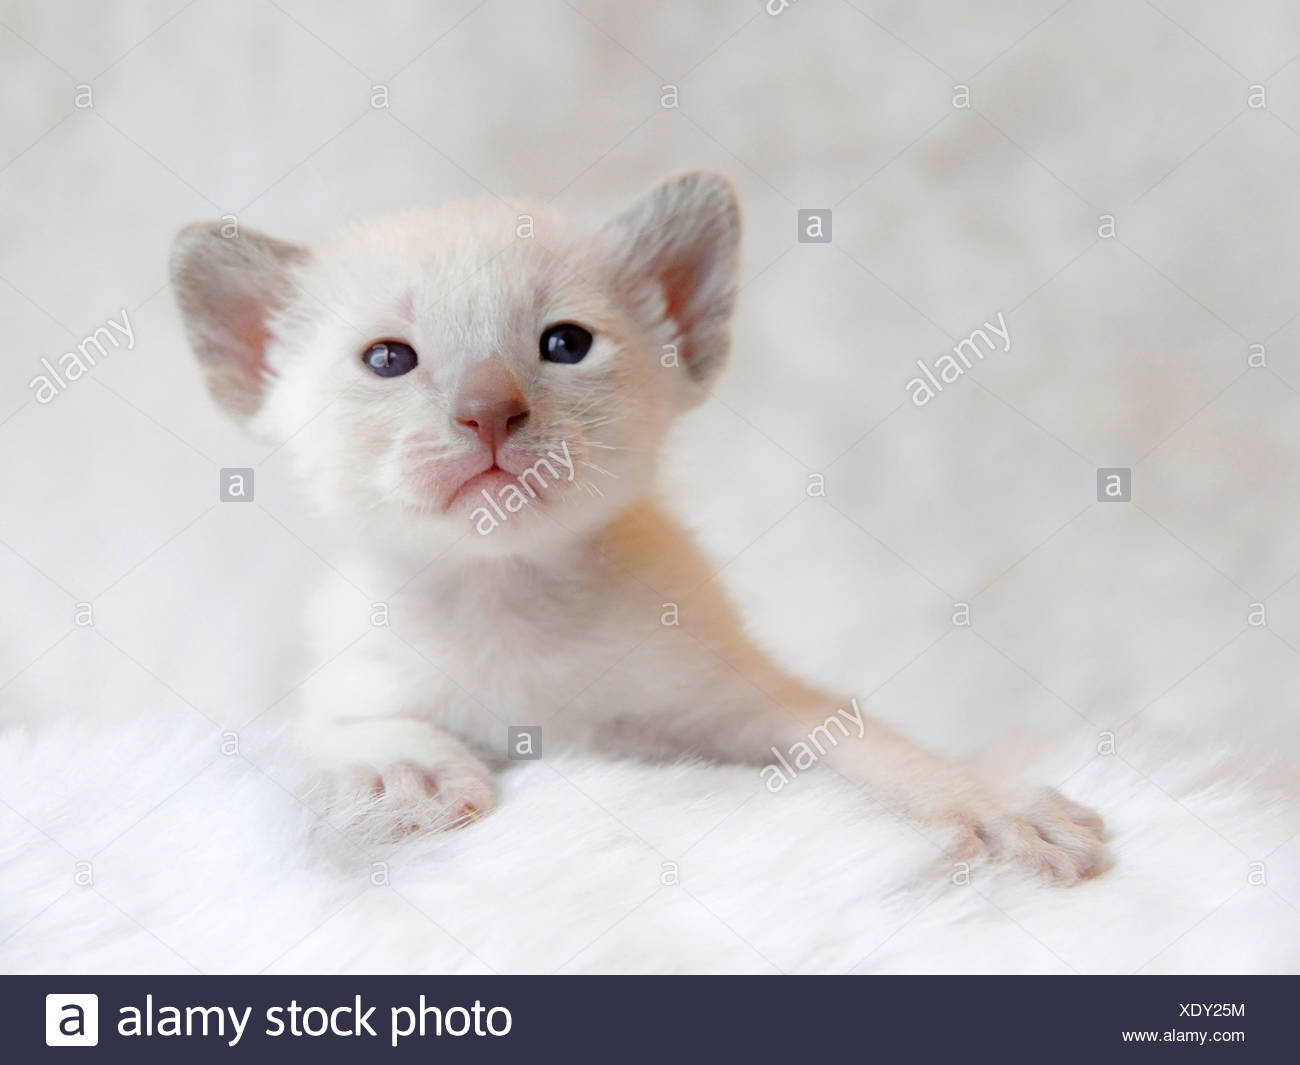 Small five week old siamese kitten. - Stock Image